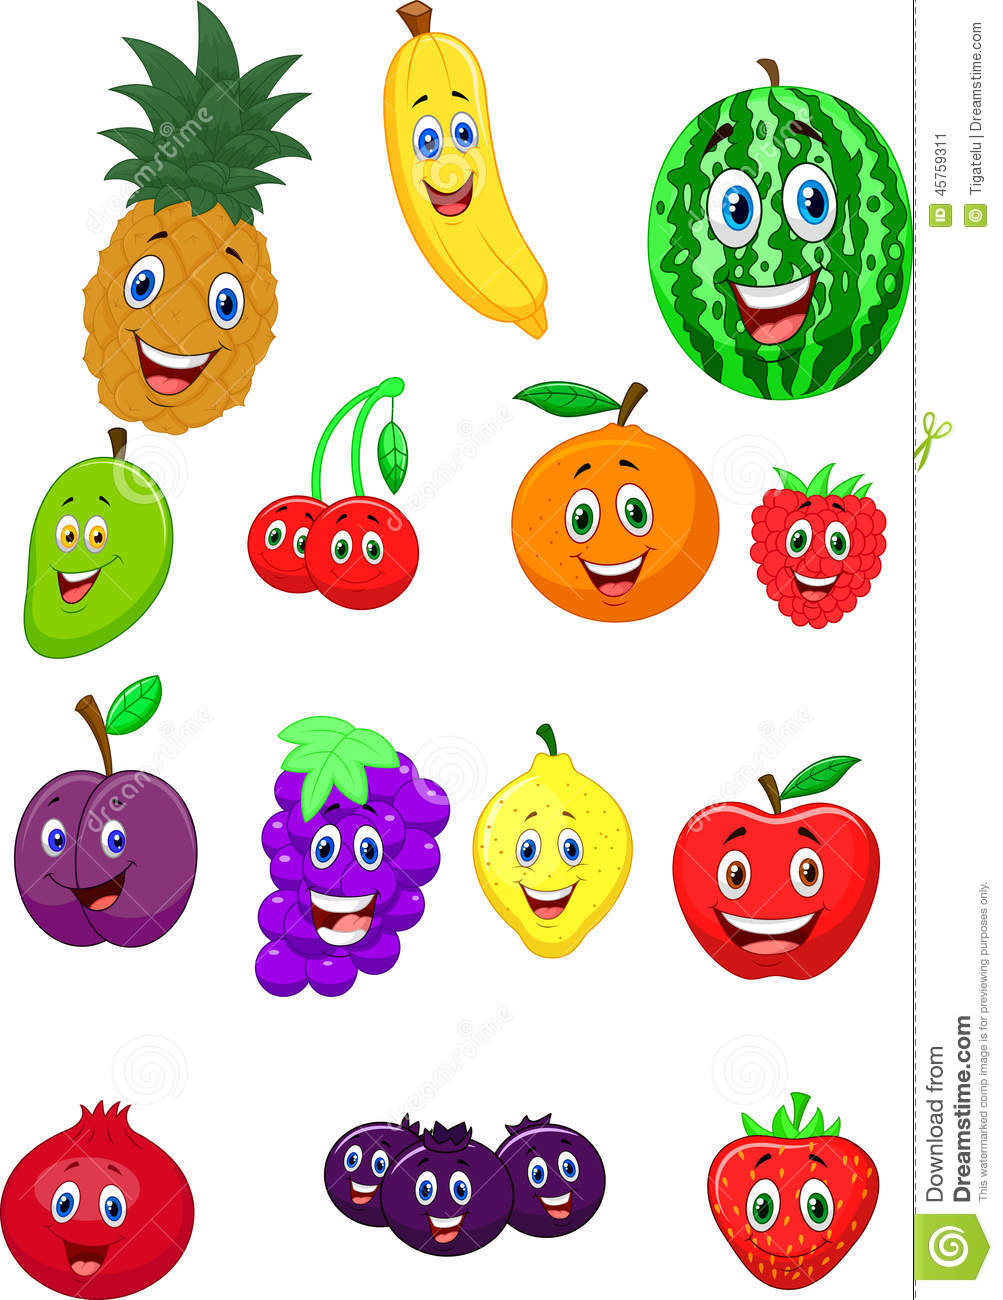 Fruit cartoon character stock vector Illustration of